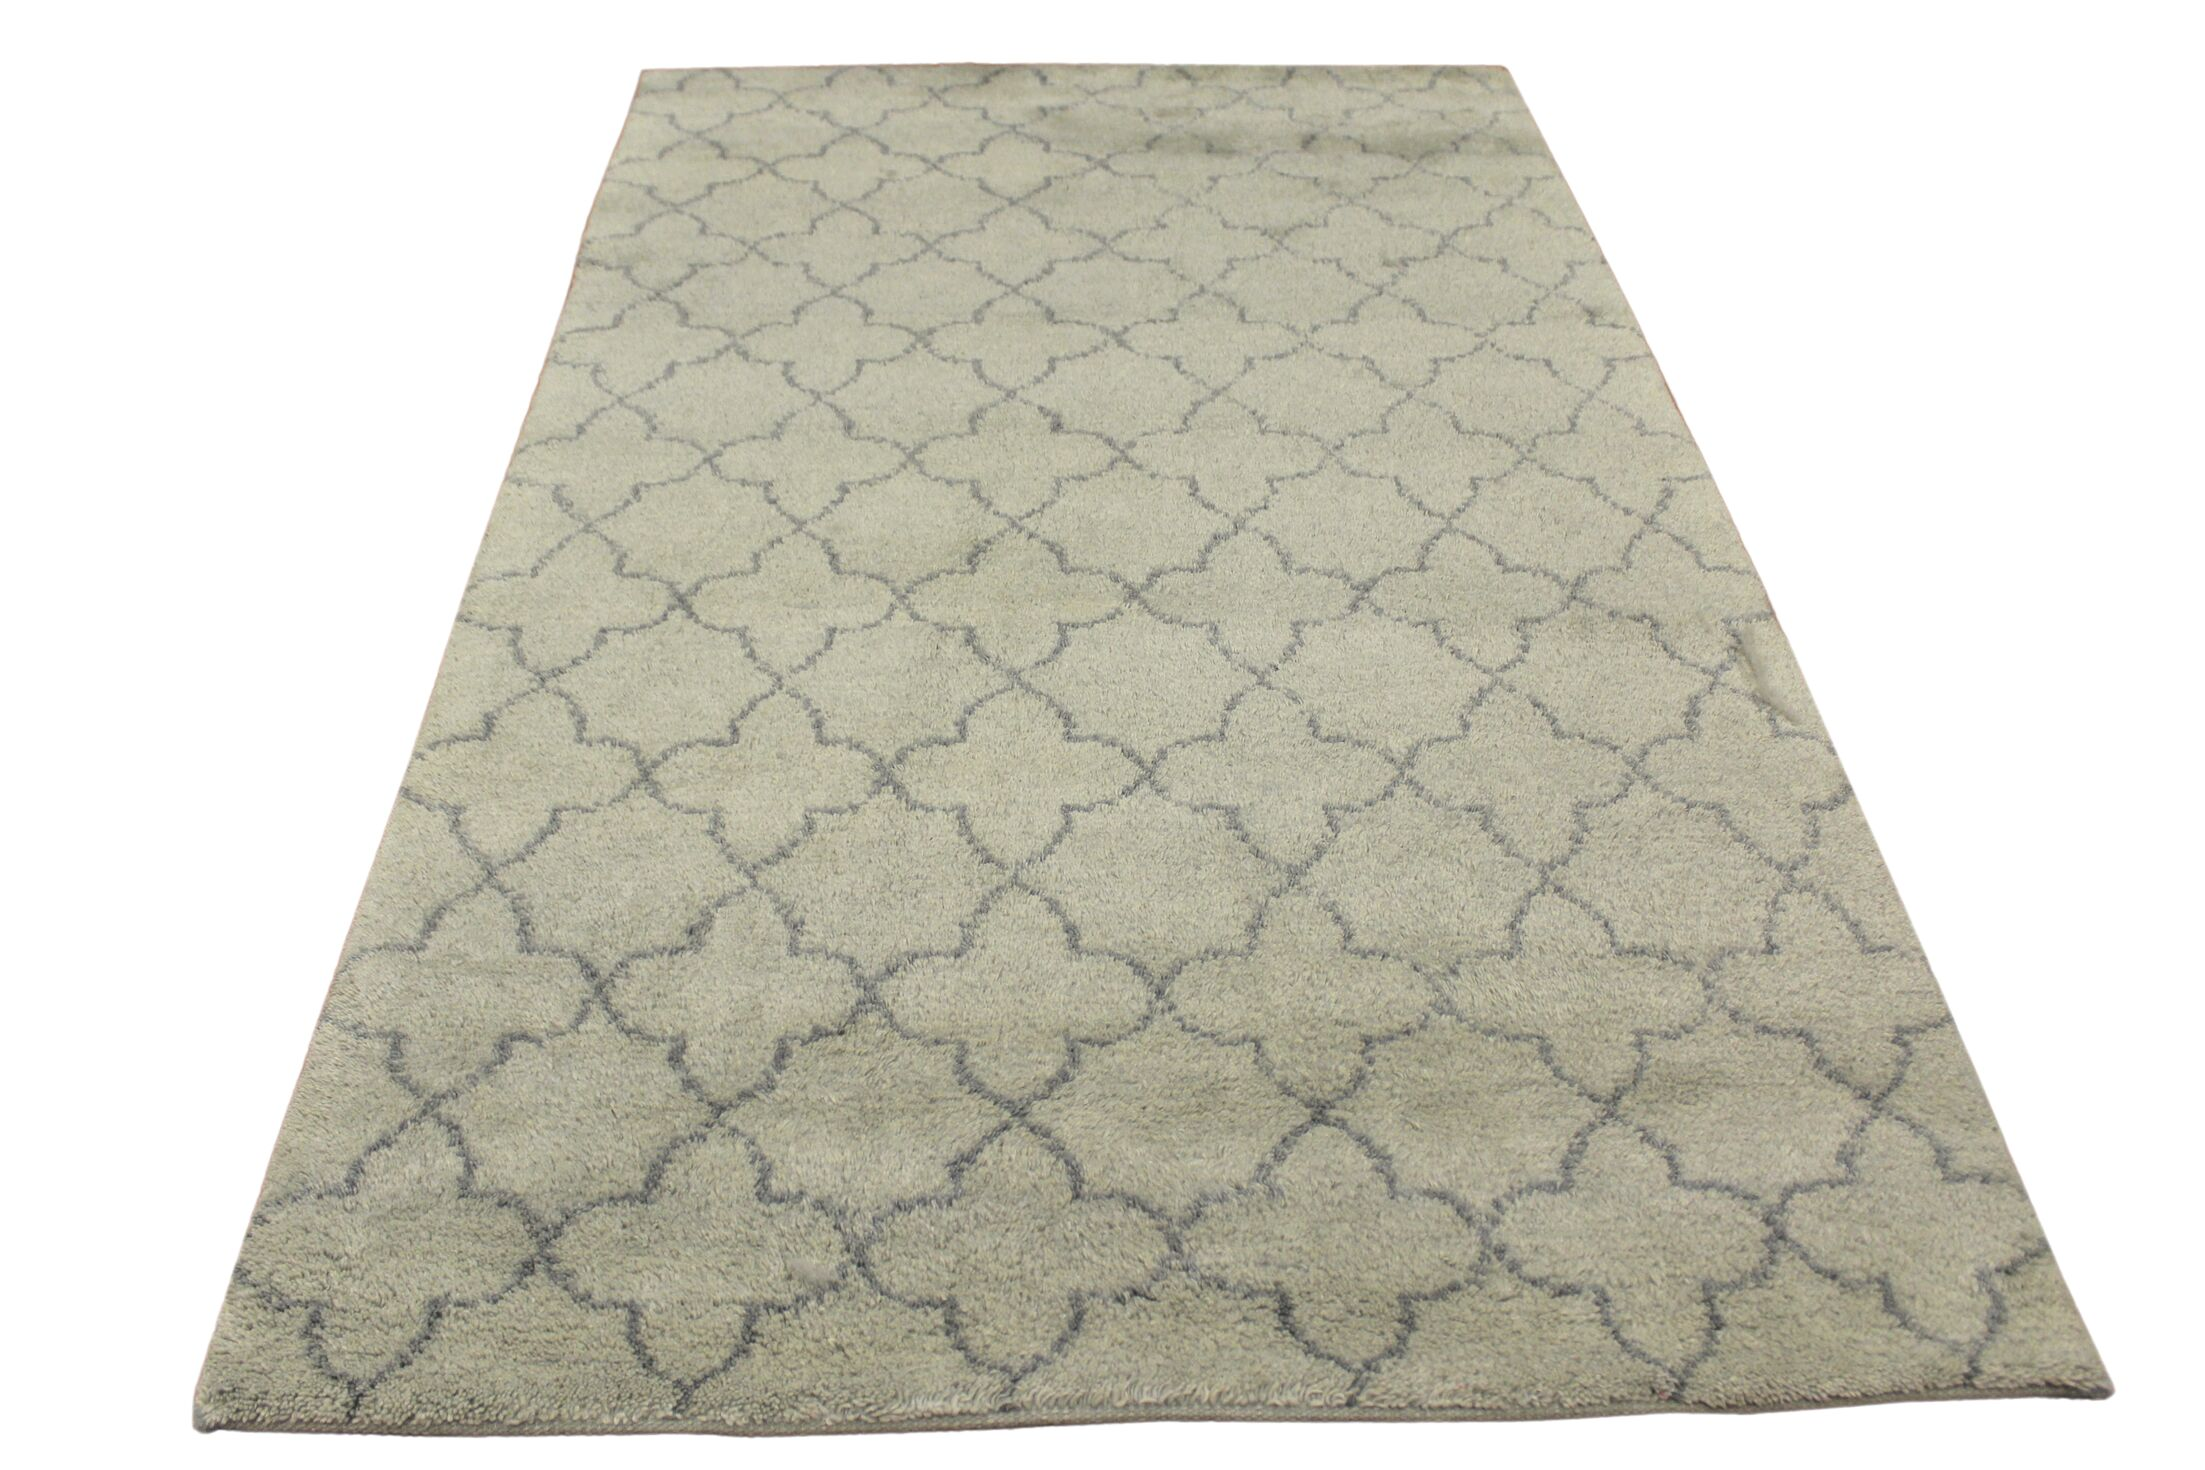 Kirklin Hand Knotted Wool Light Green/Gray Indoor Area Rug Rug Size: Rectangle 5'1